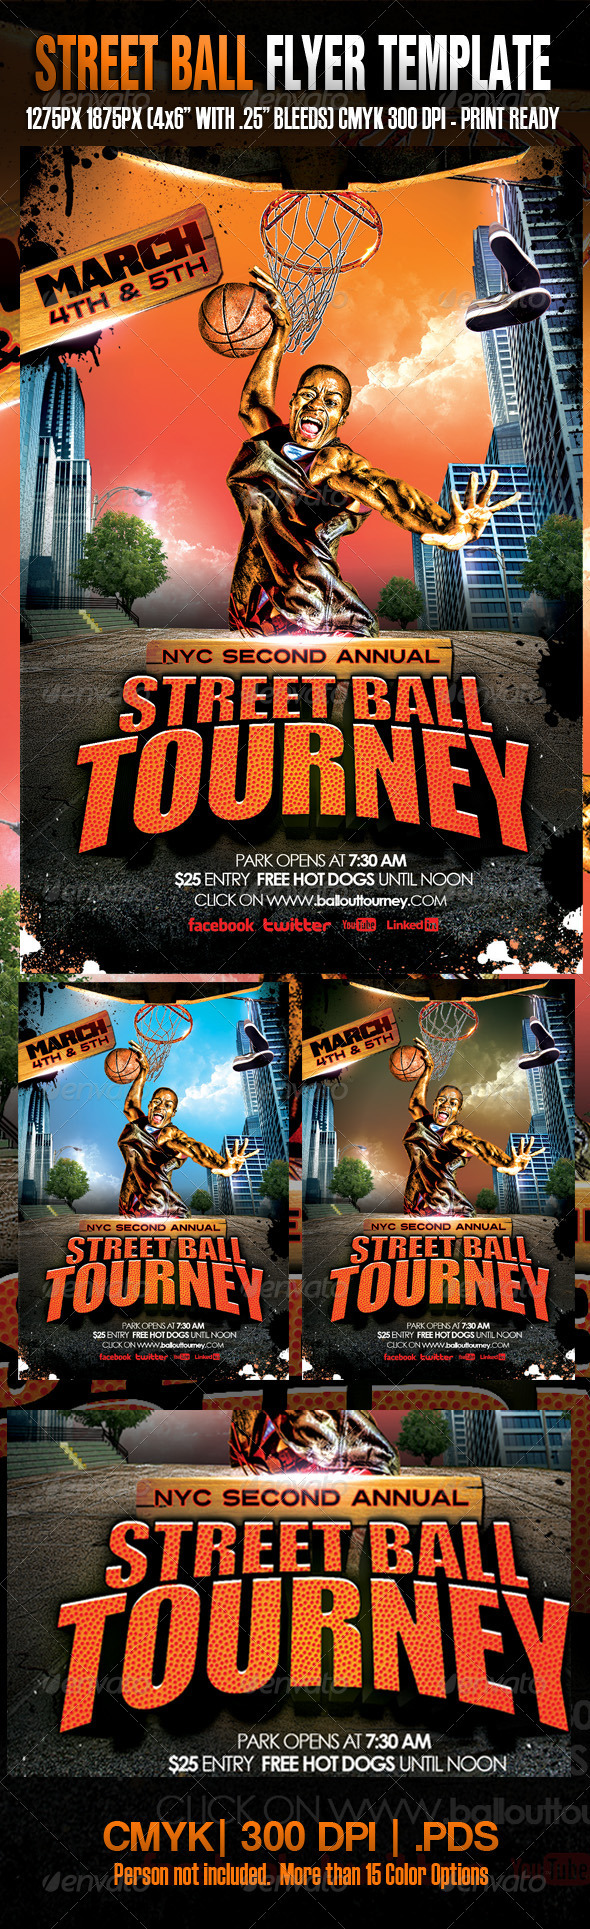 Street Ball Tourney Template - Flyers Print Templates